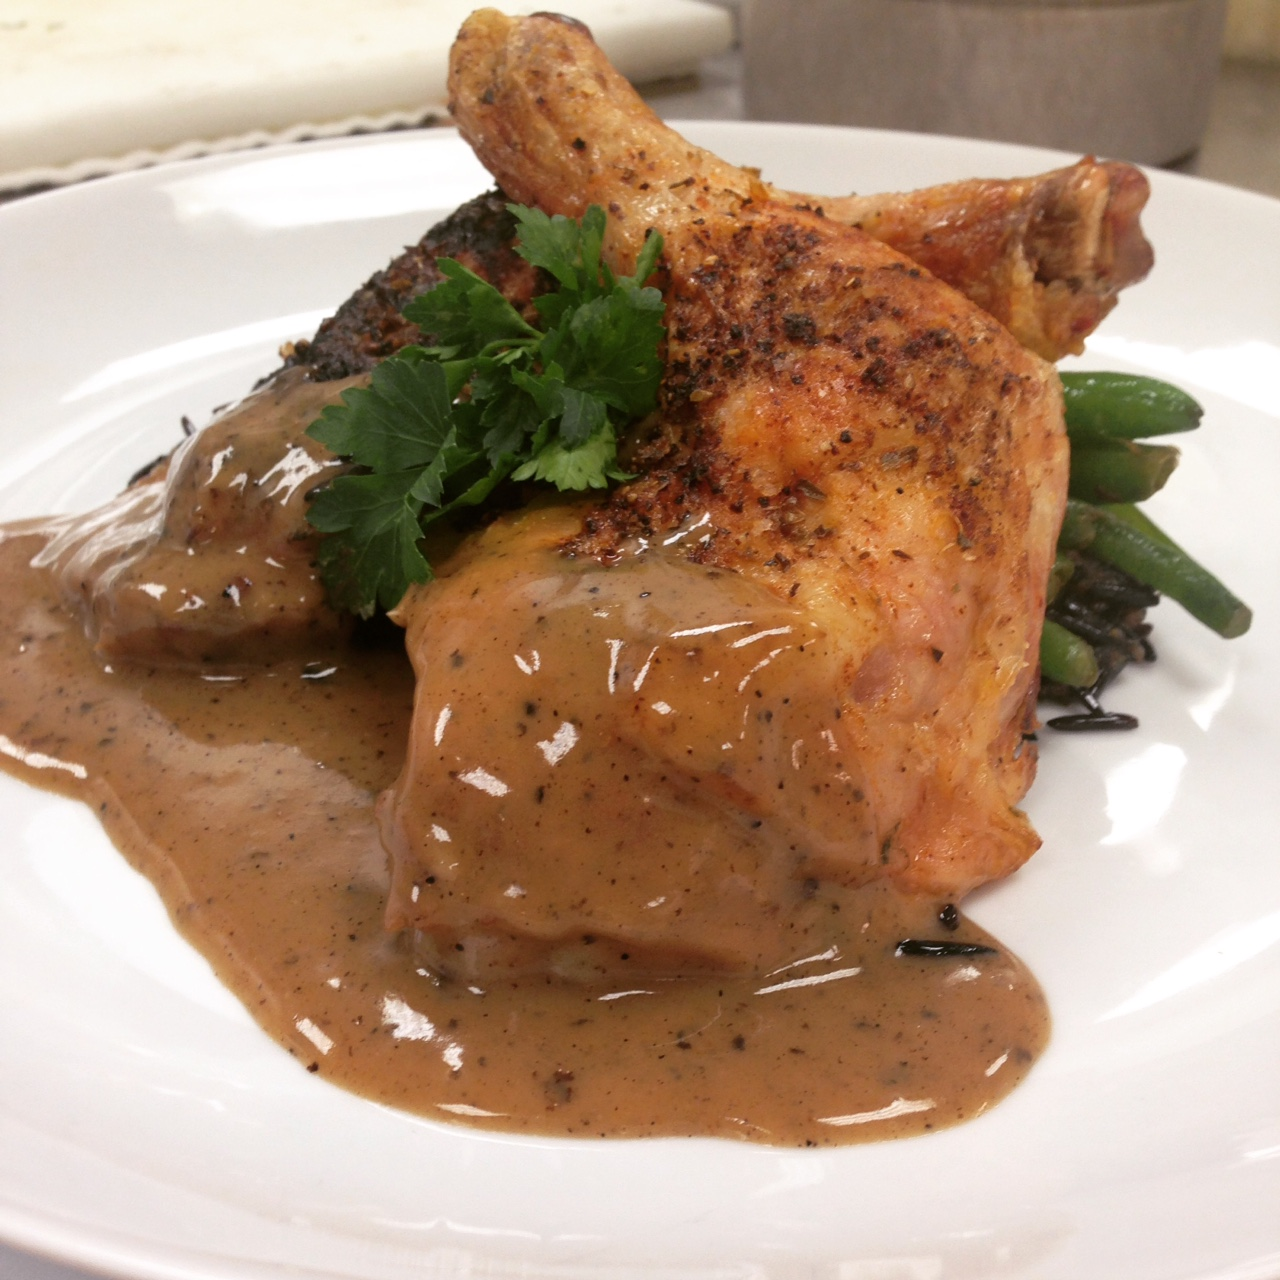 Roasting week! Roasted chicken with pan gravy, green beans and wild rice pilaf.